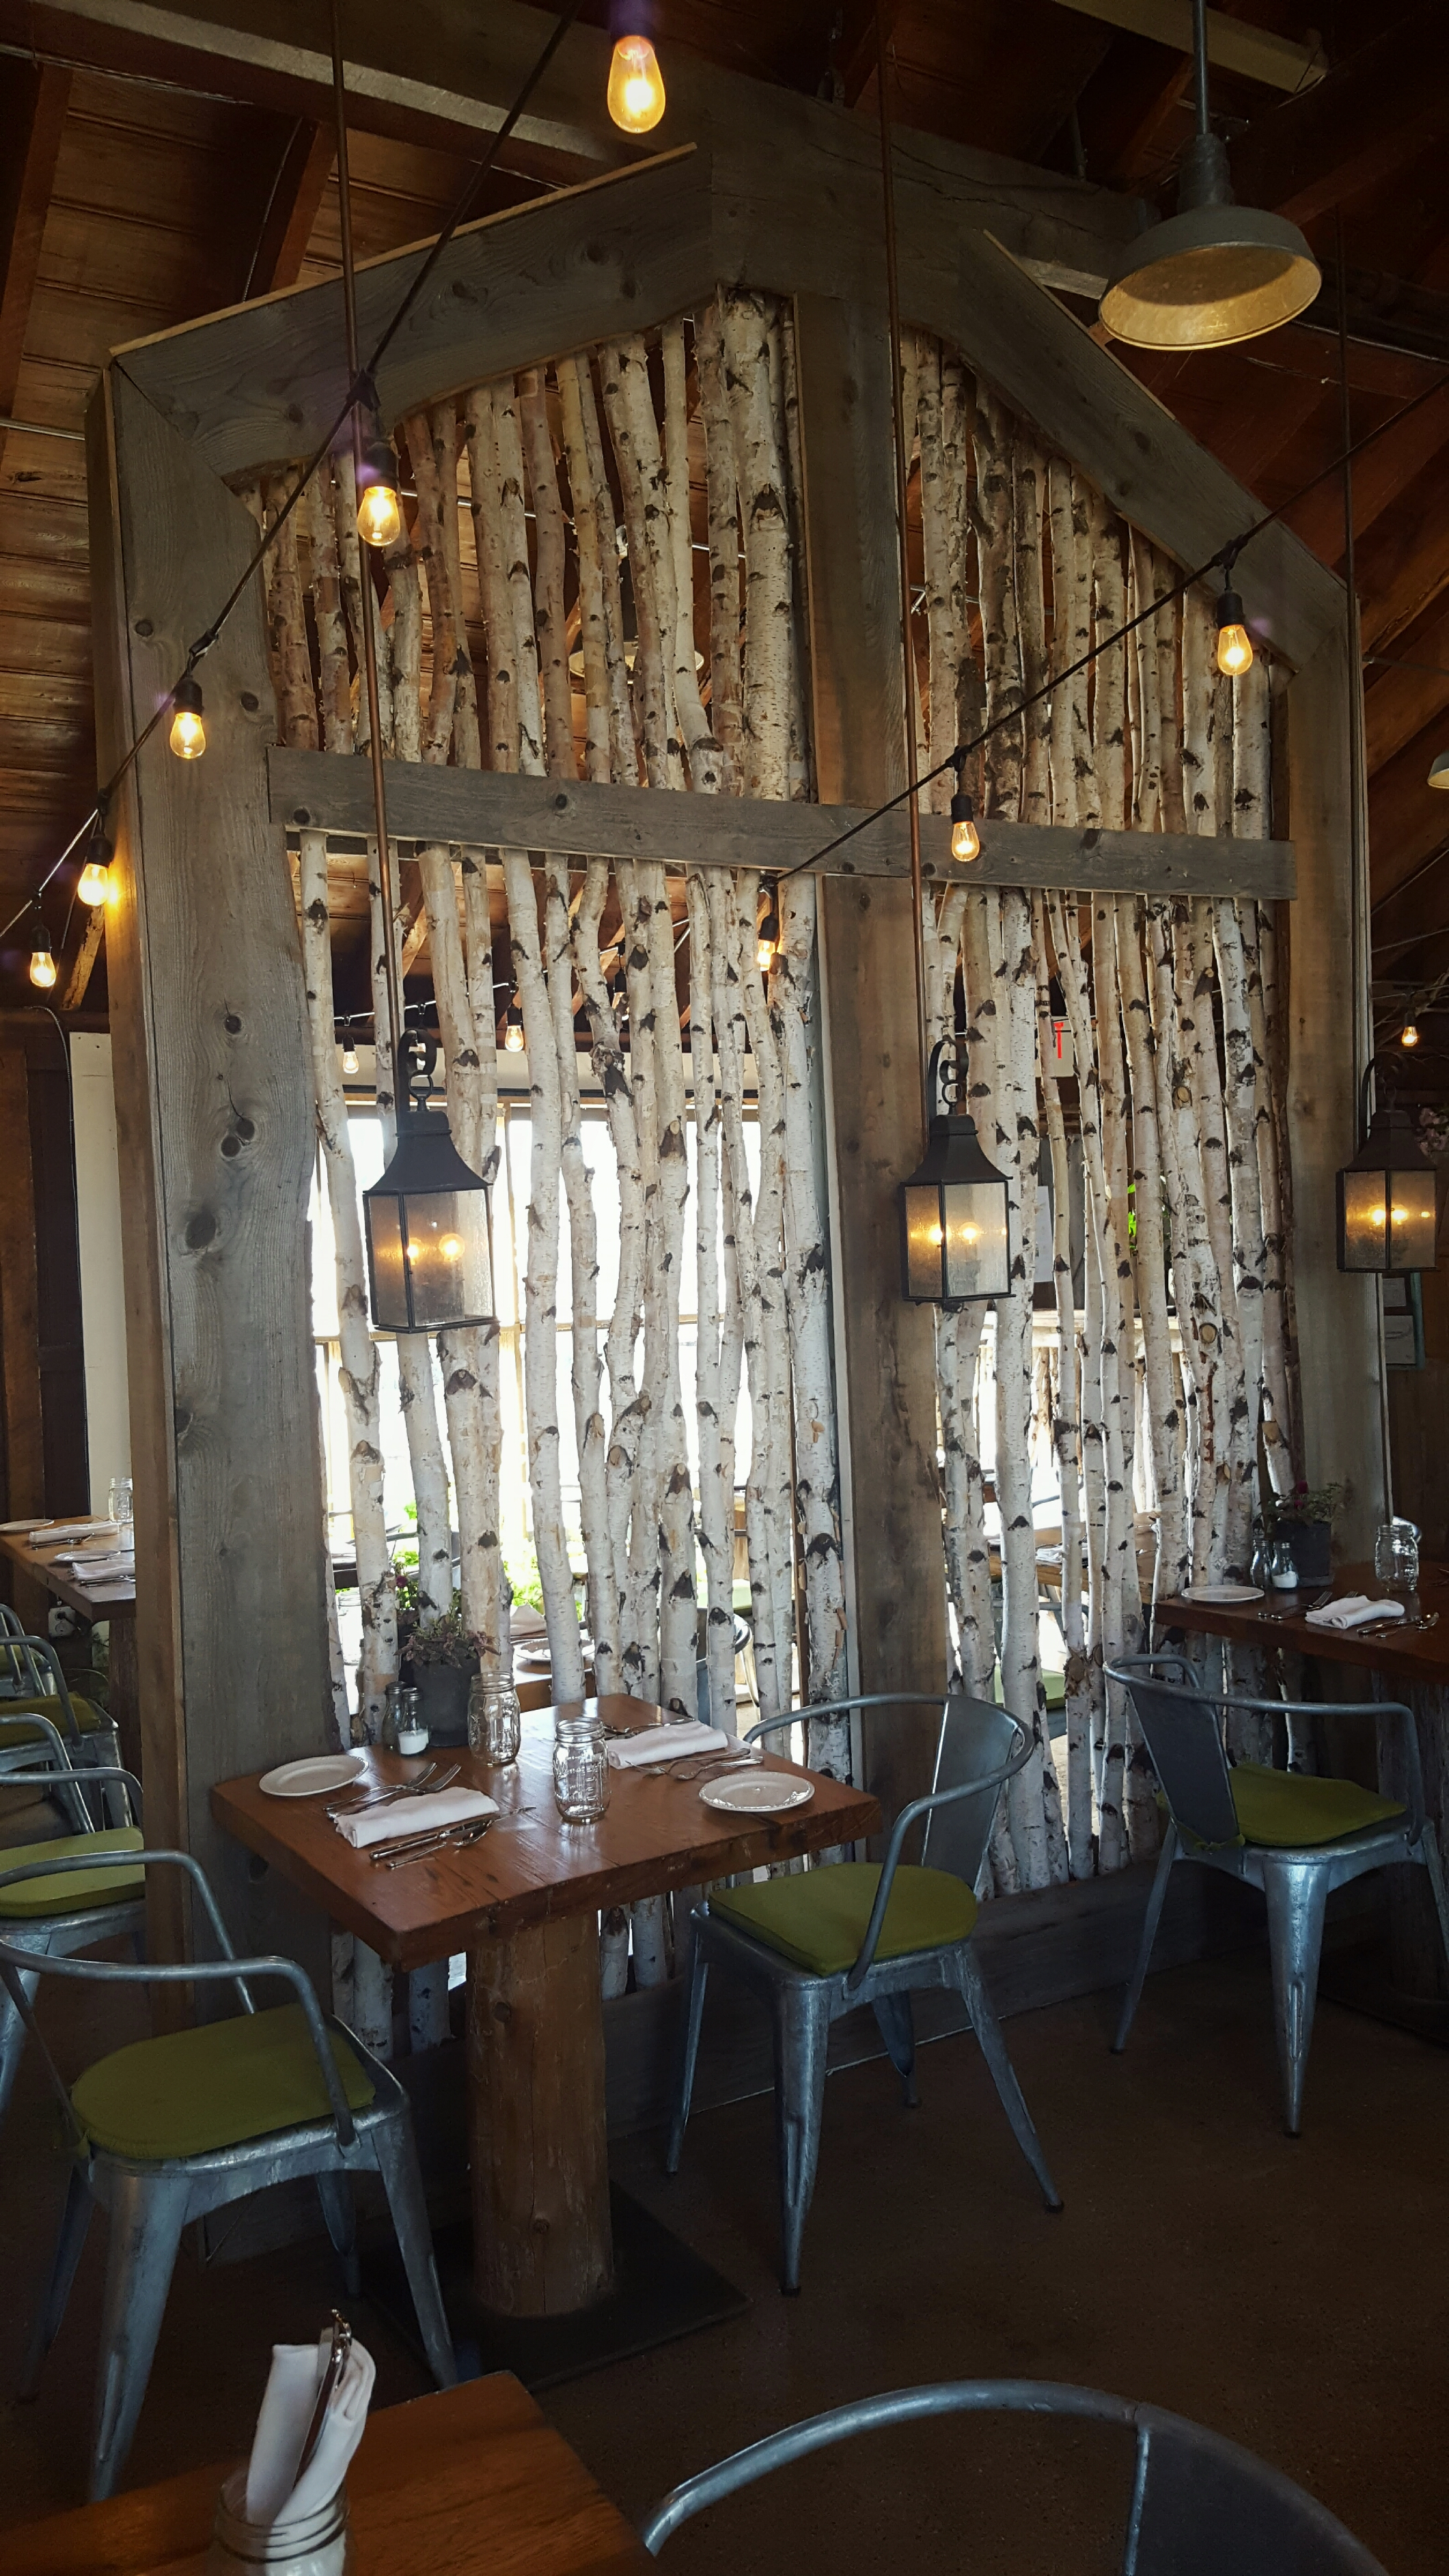 These white birch poles can be found everywhere now (even at HomeGoods and TJ Maxx). Your local contractor can make this for you as a backdrop at a barn wedding or party!